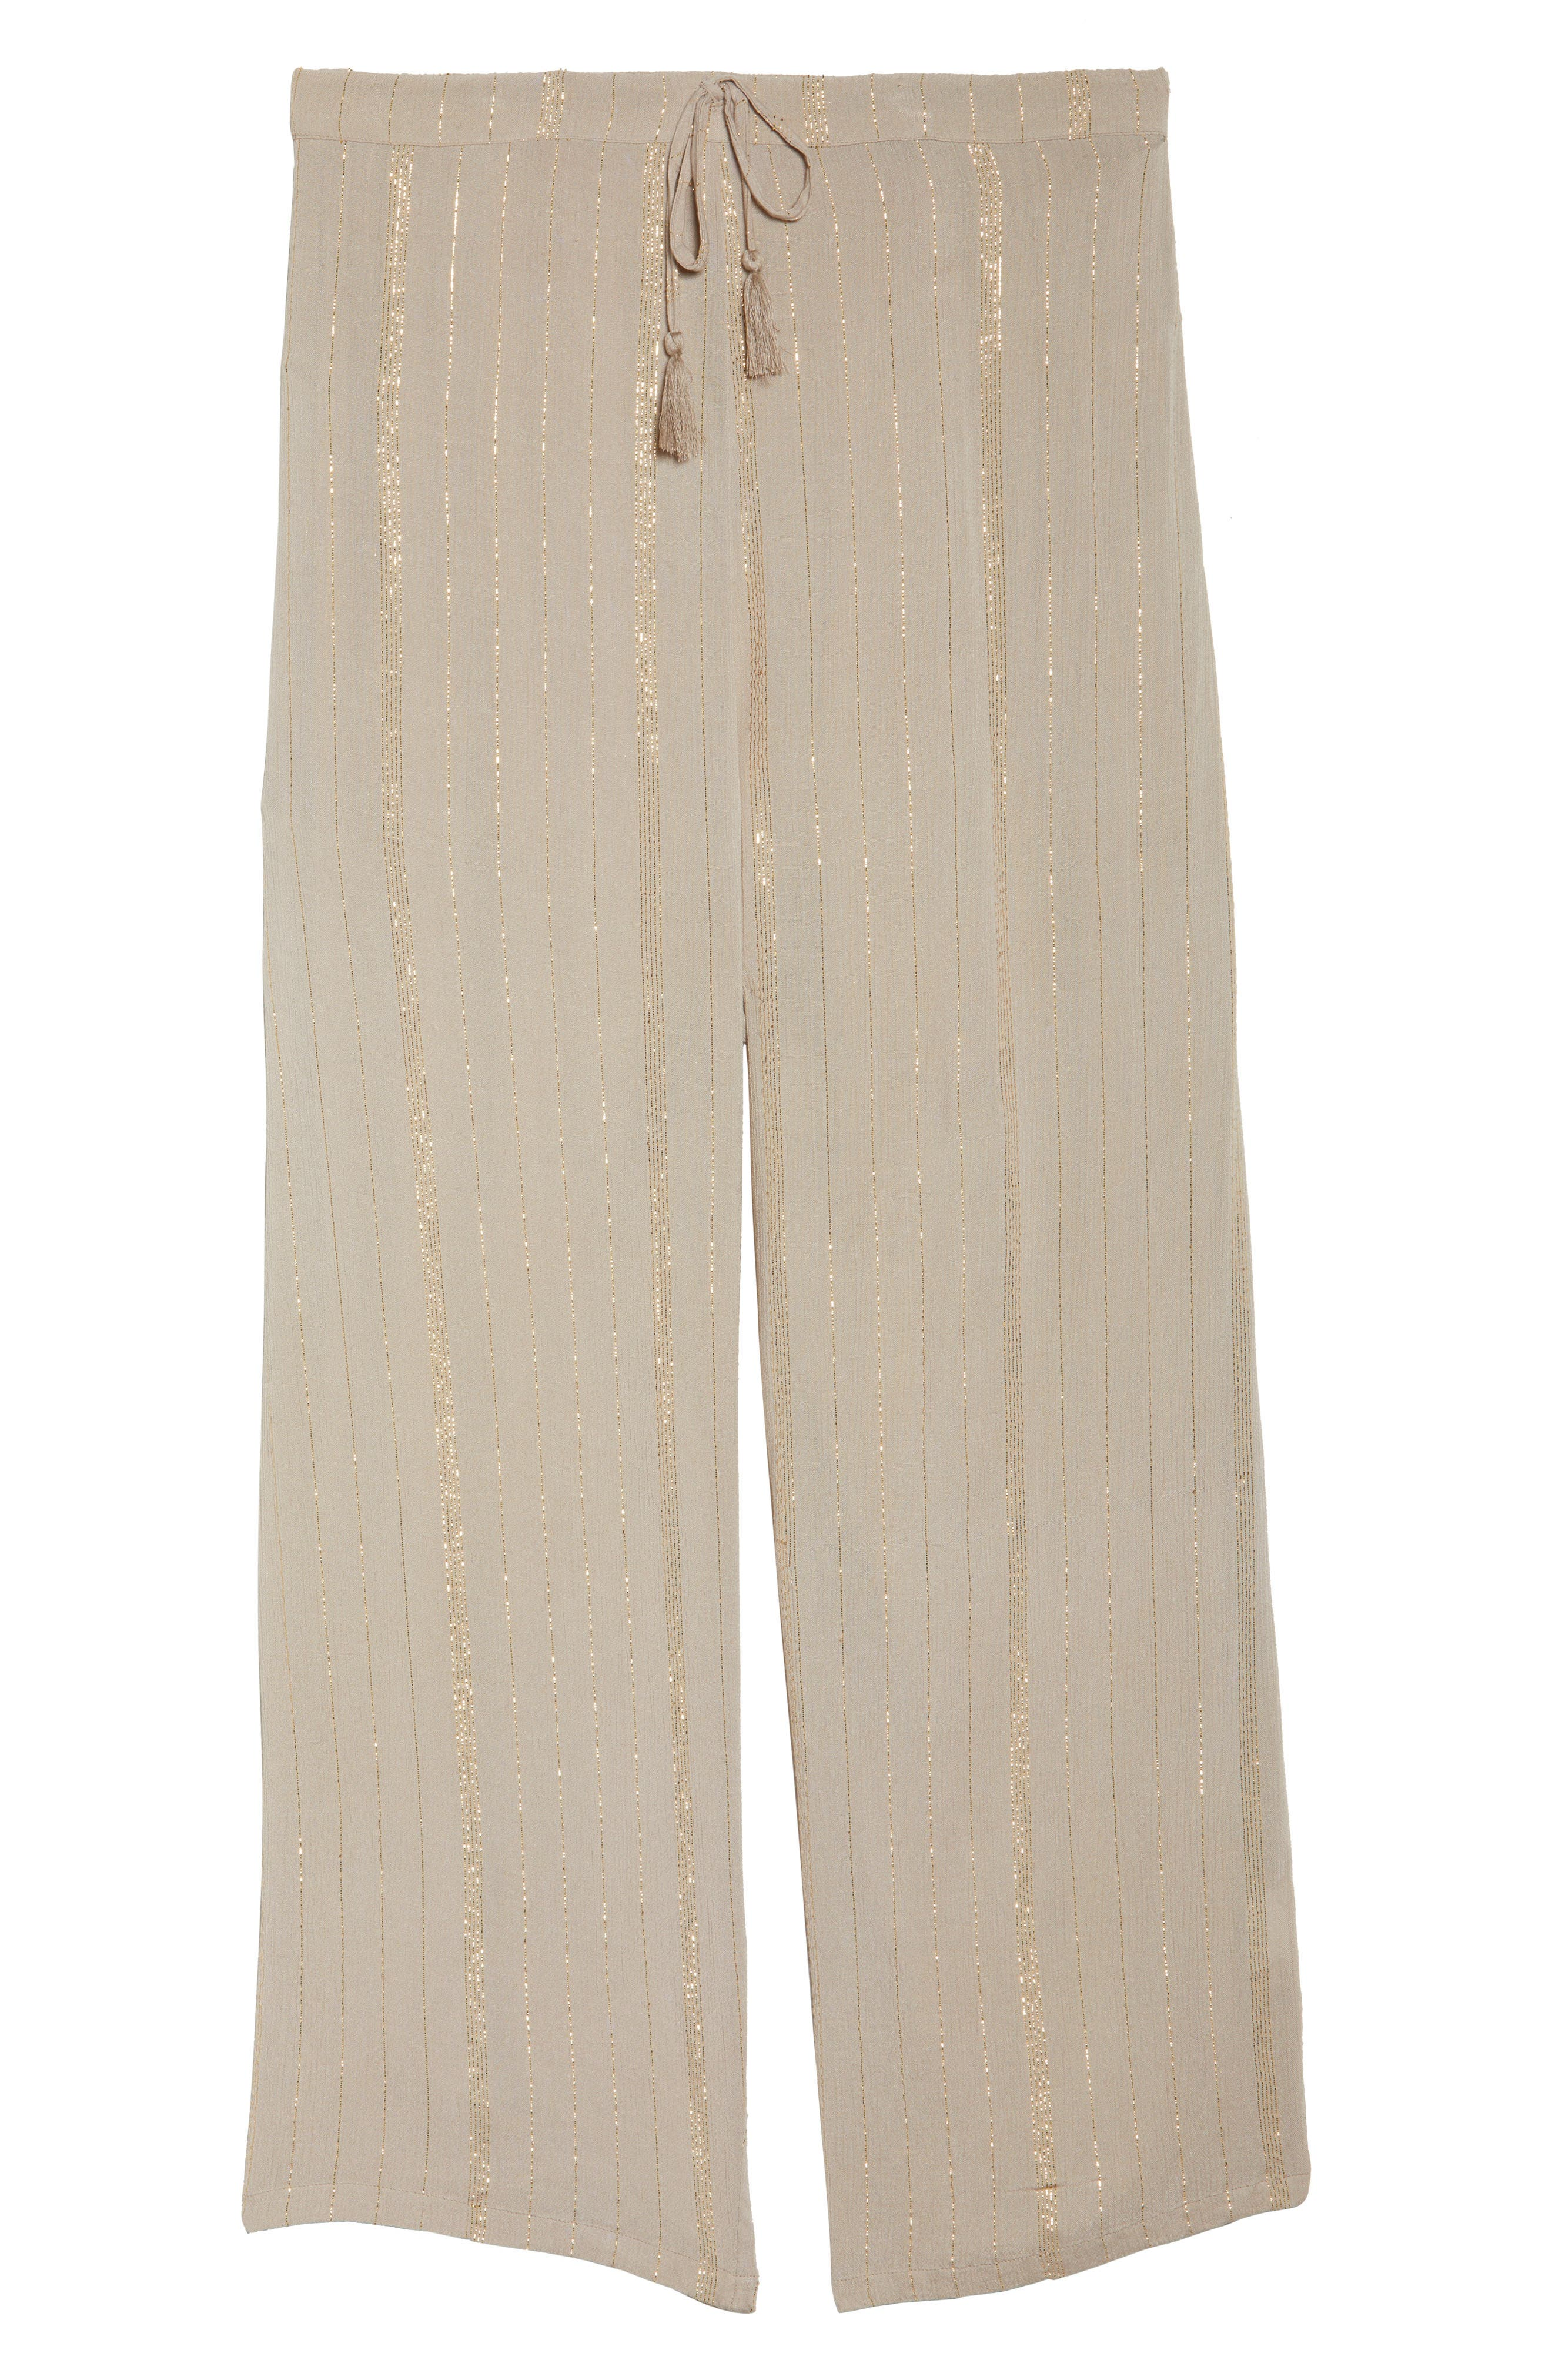 Iris Cover-Up Pants,                             Alternate thumbnail 6, color,